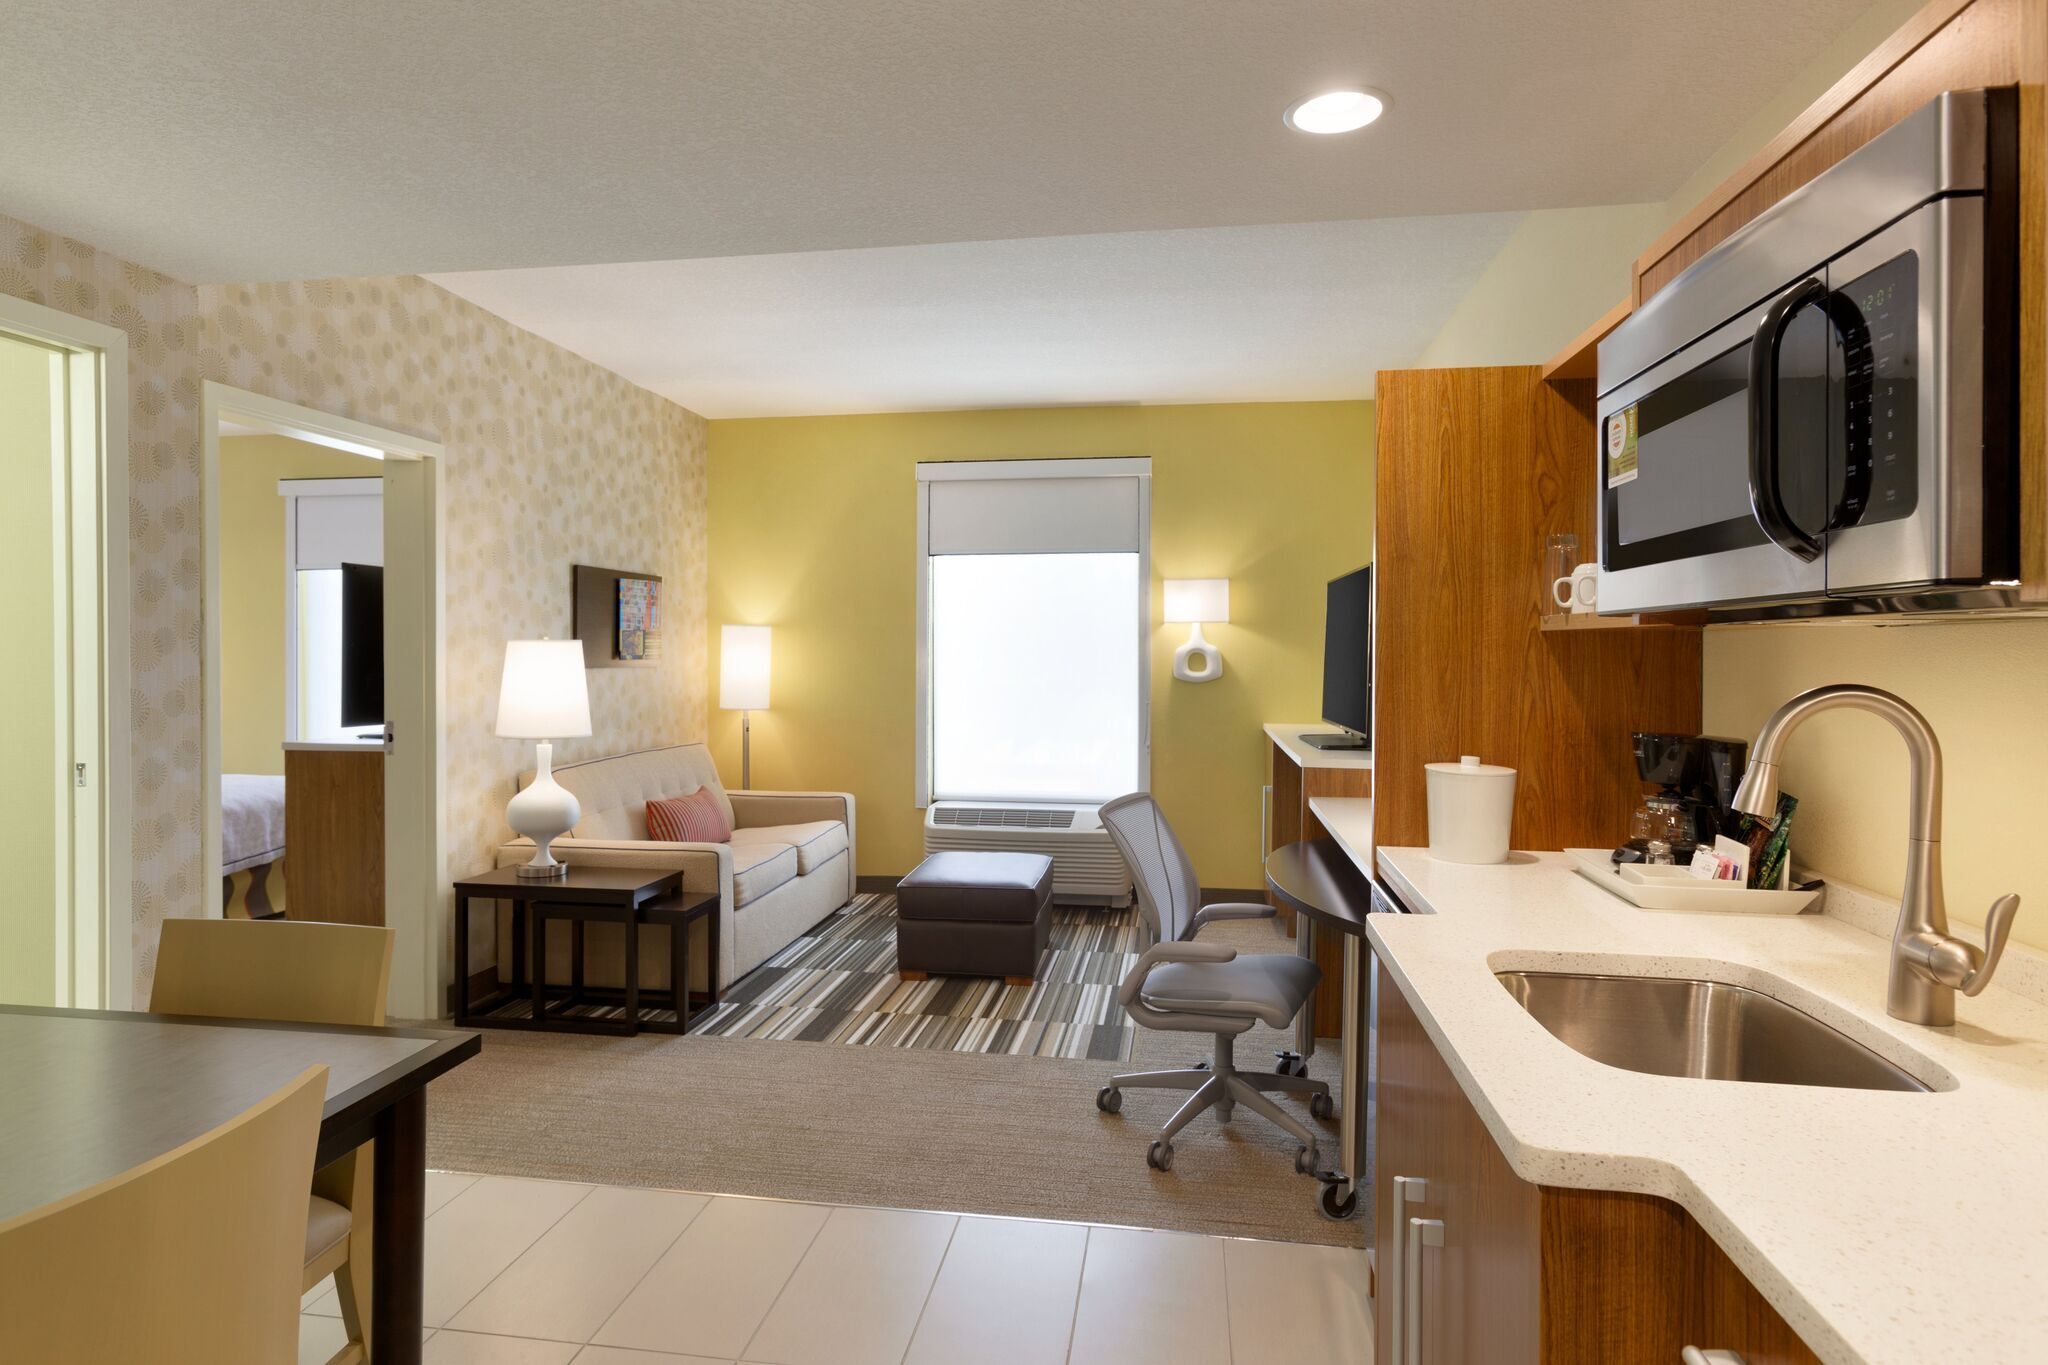 Home2 Suites By Hilton Gainesville Impact Properties